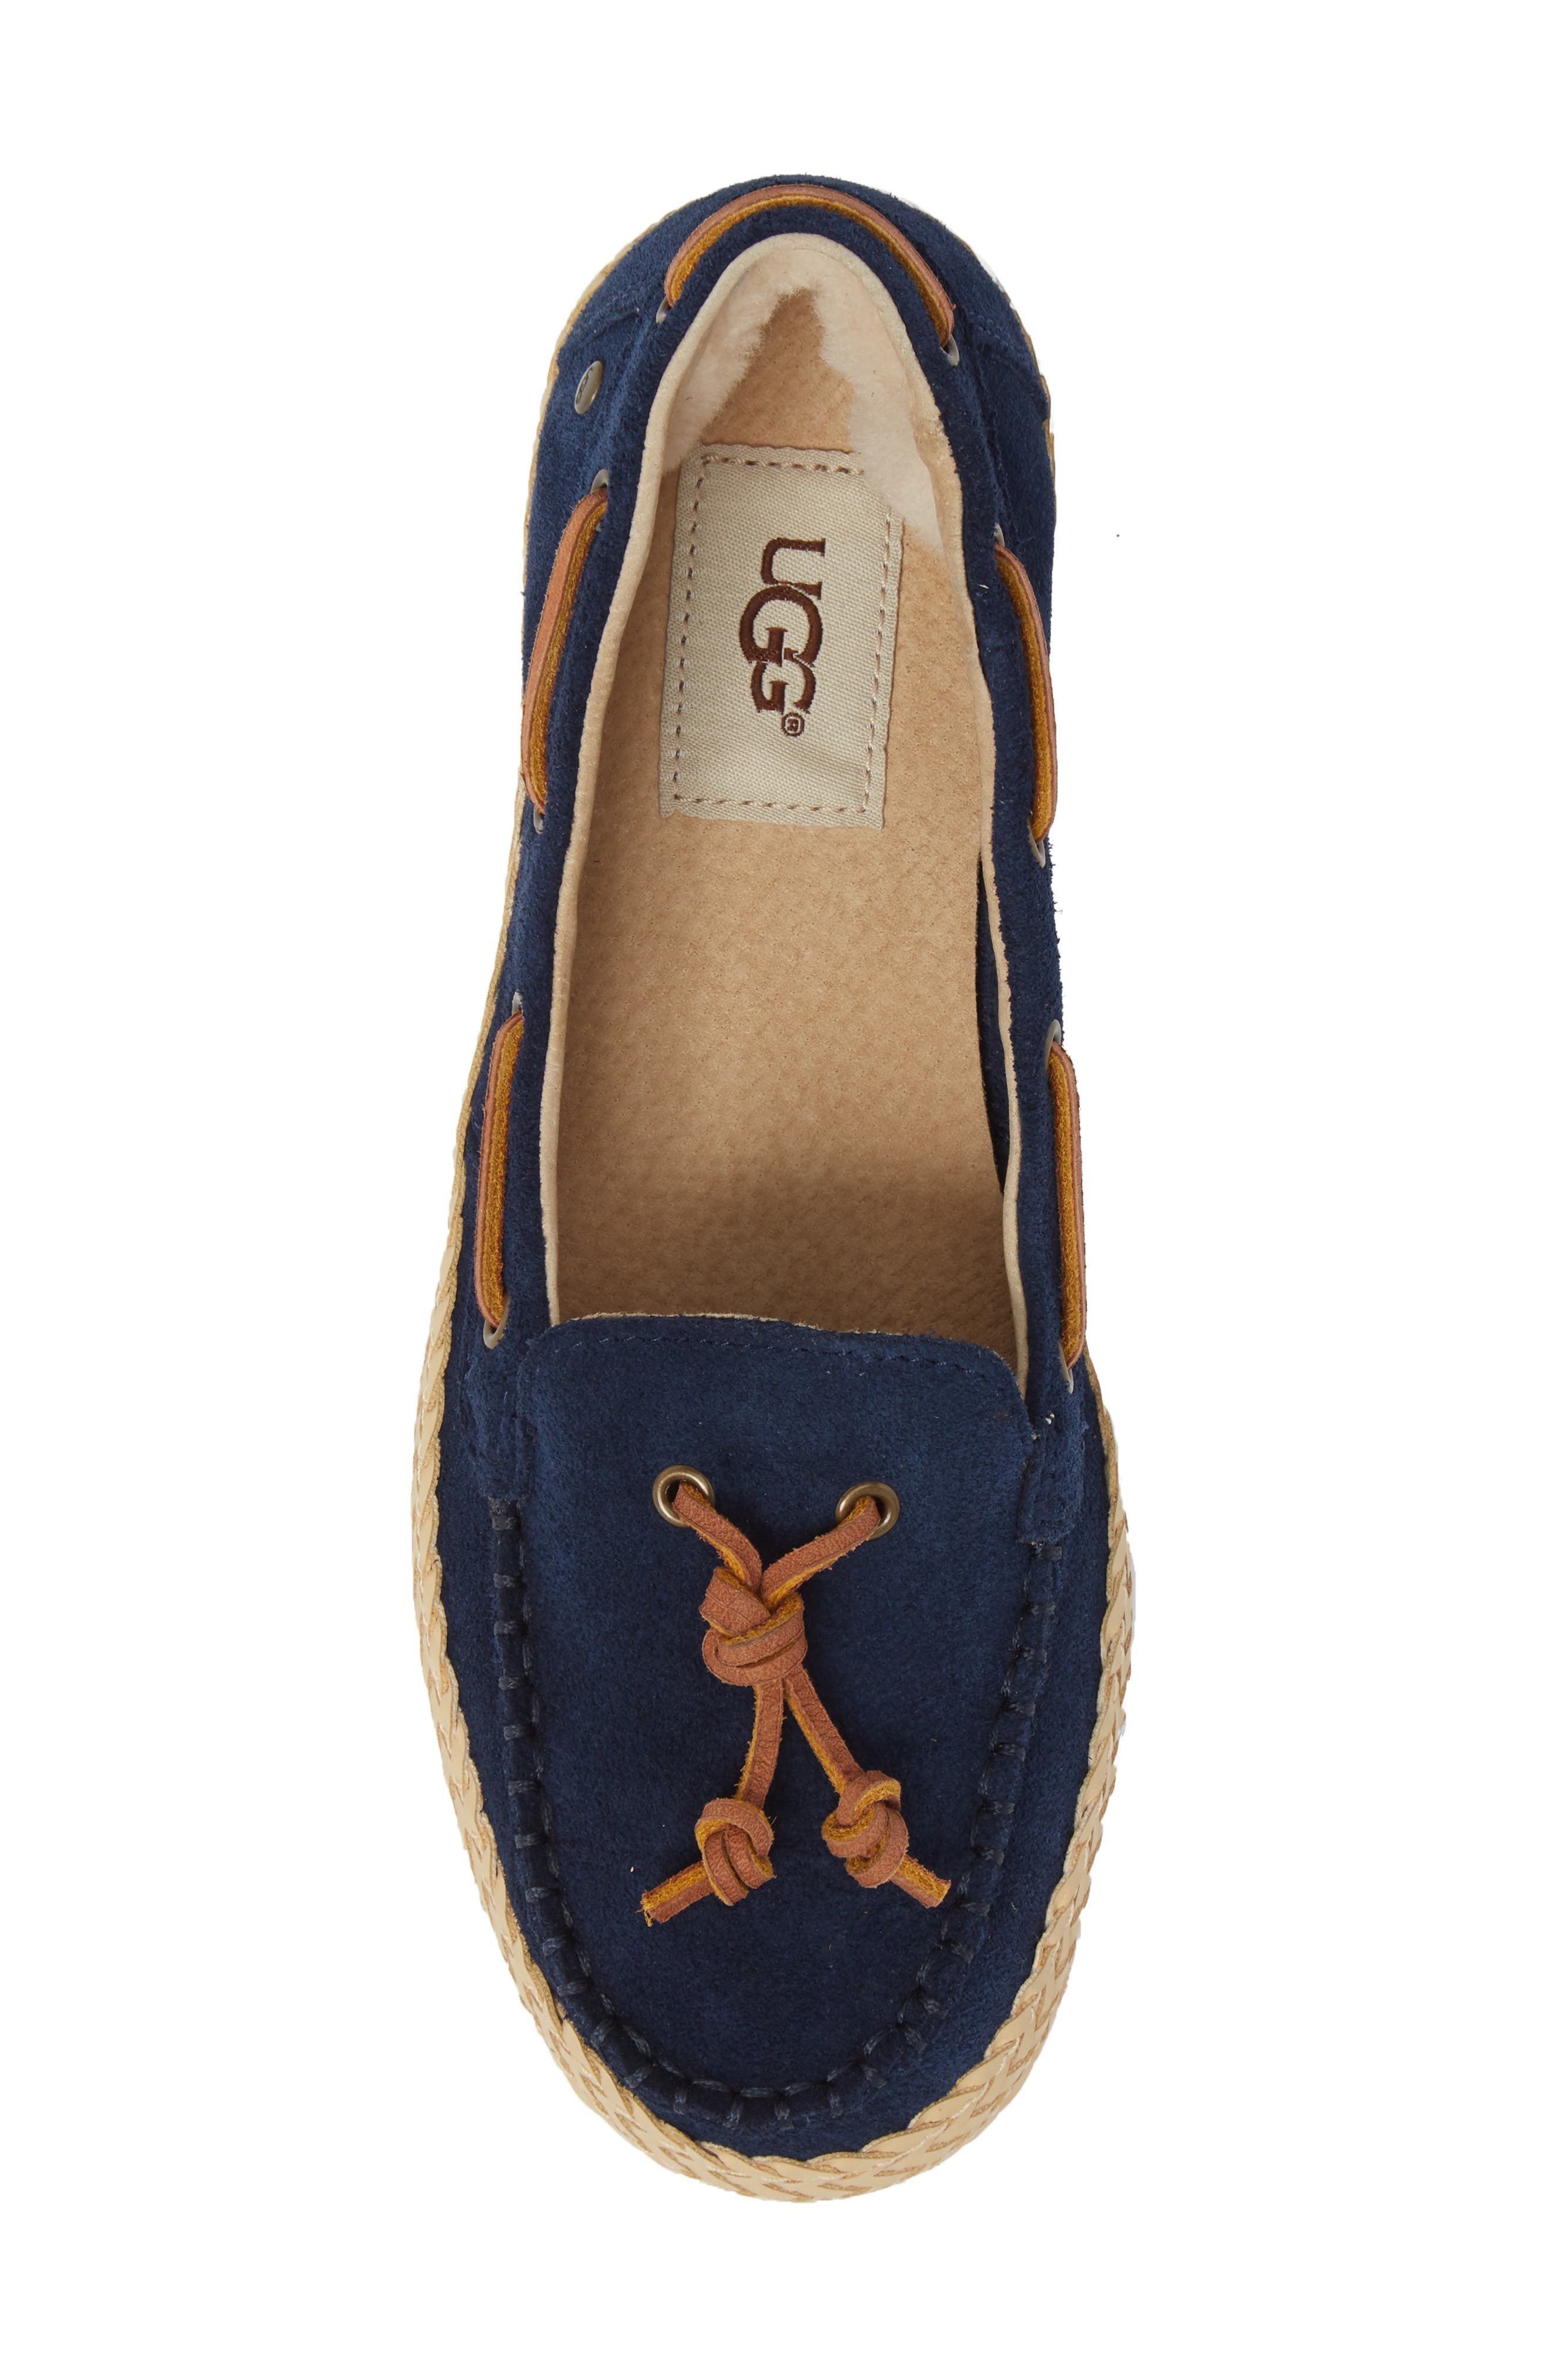 Channtal Loafer,                             Alternate thumbnail 10, color,